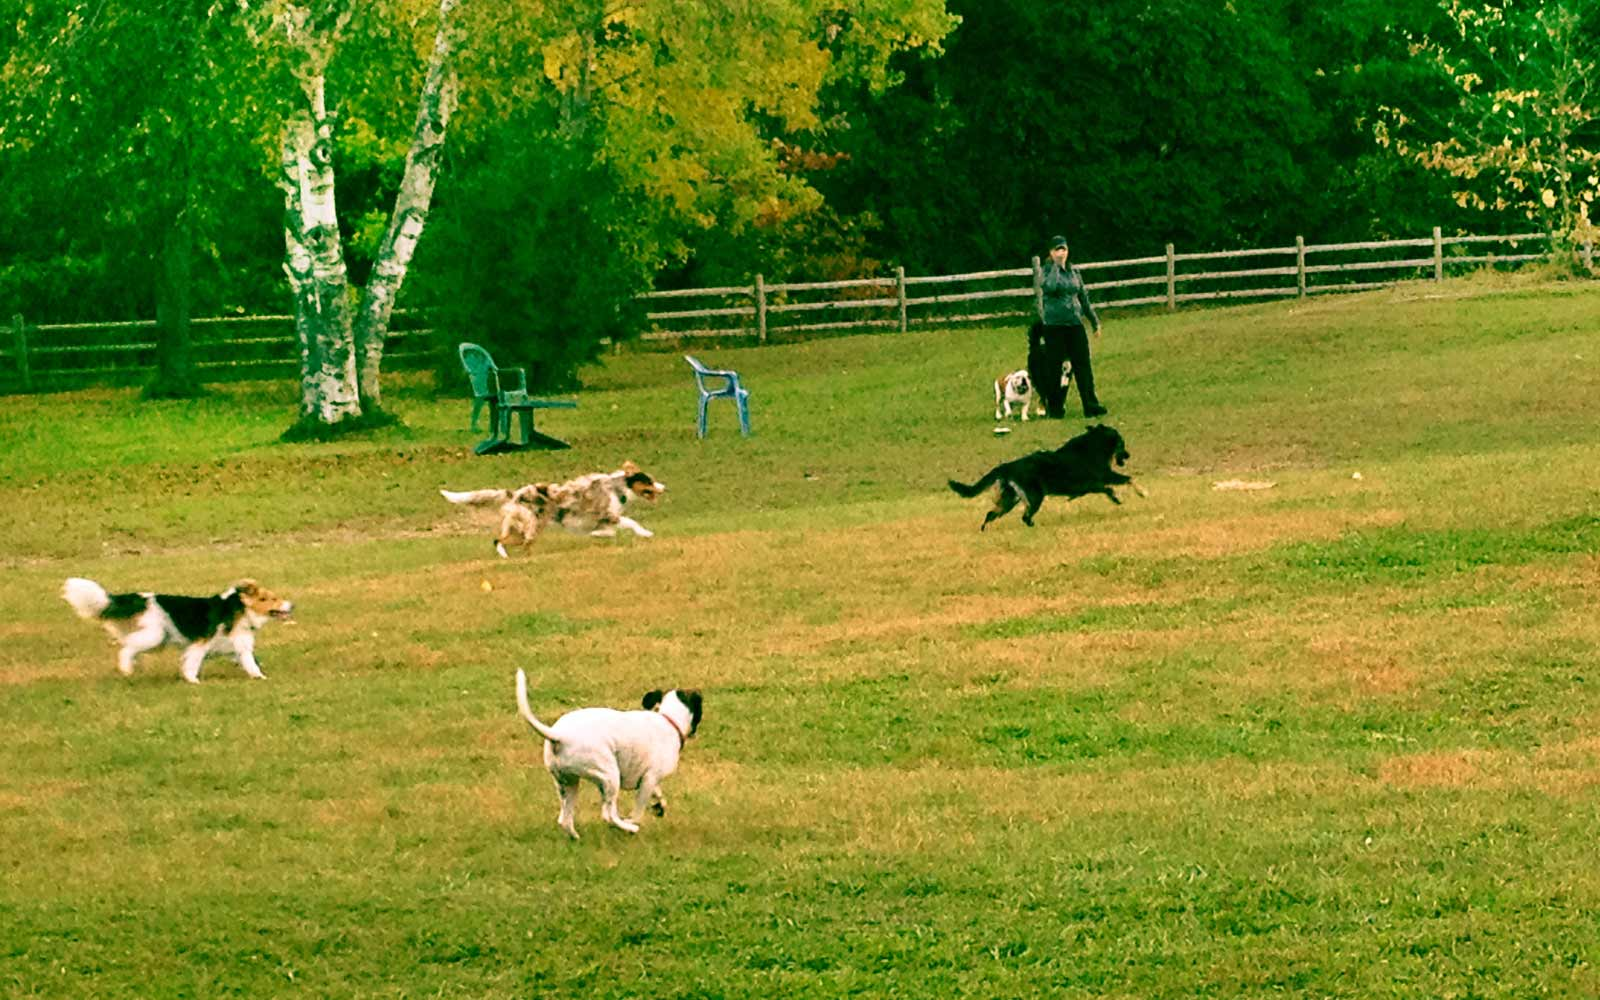 Dogs Running in Field at Grand Valley Park in Pickering, ON